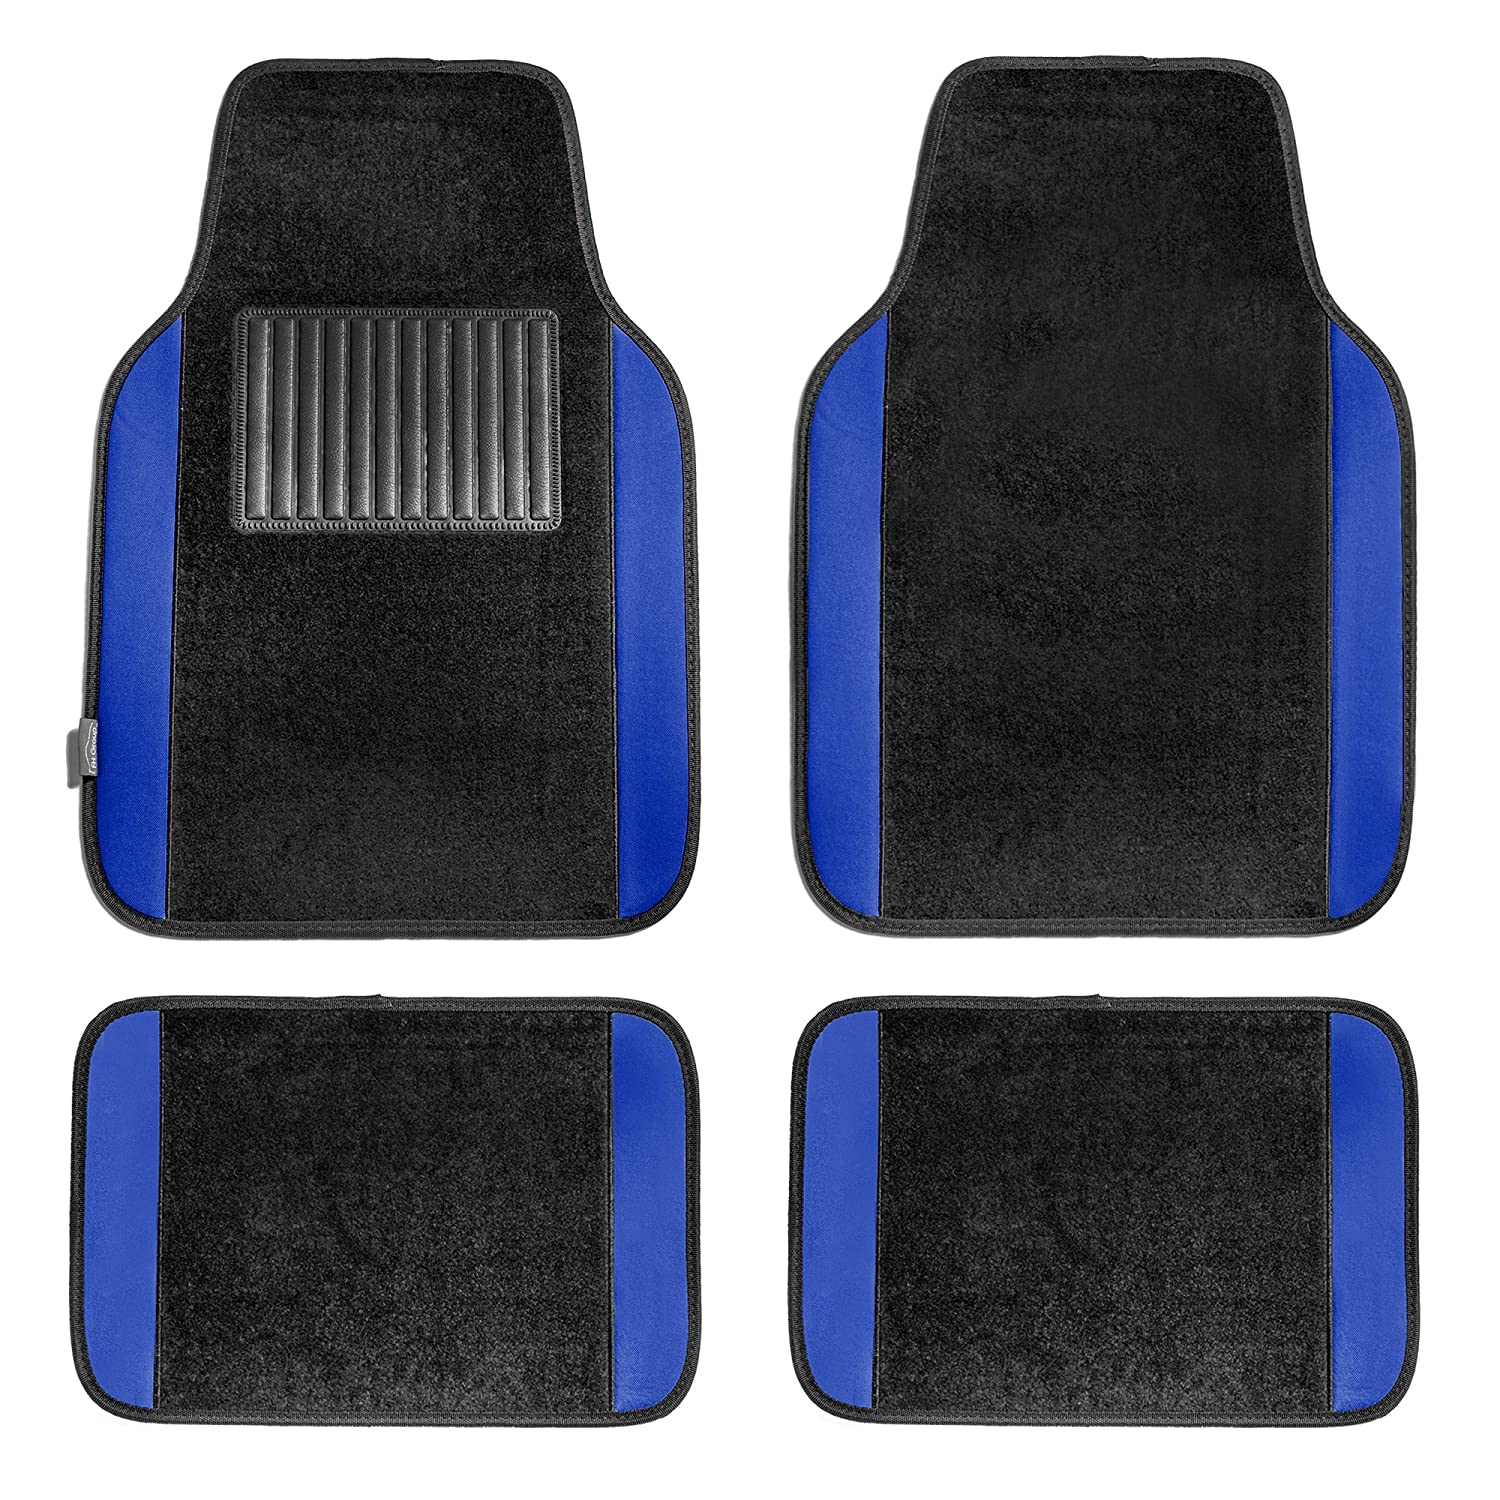 Fit Most Car Truck or Van FH GROUP FH-FB030115 Light /& Breezy Cloth Seat Cover Set Airbag /& Split Ready with Carpet Floor Mats Solid Black Suv